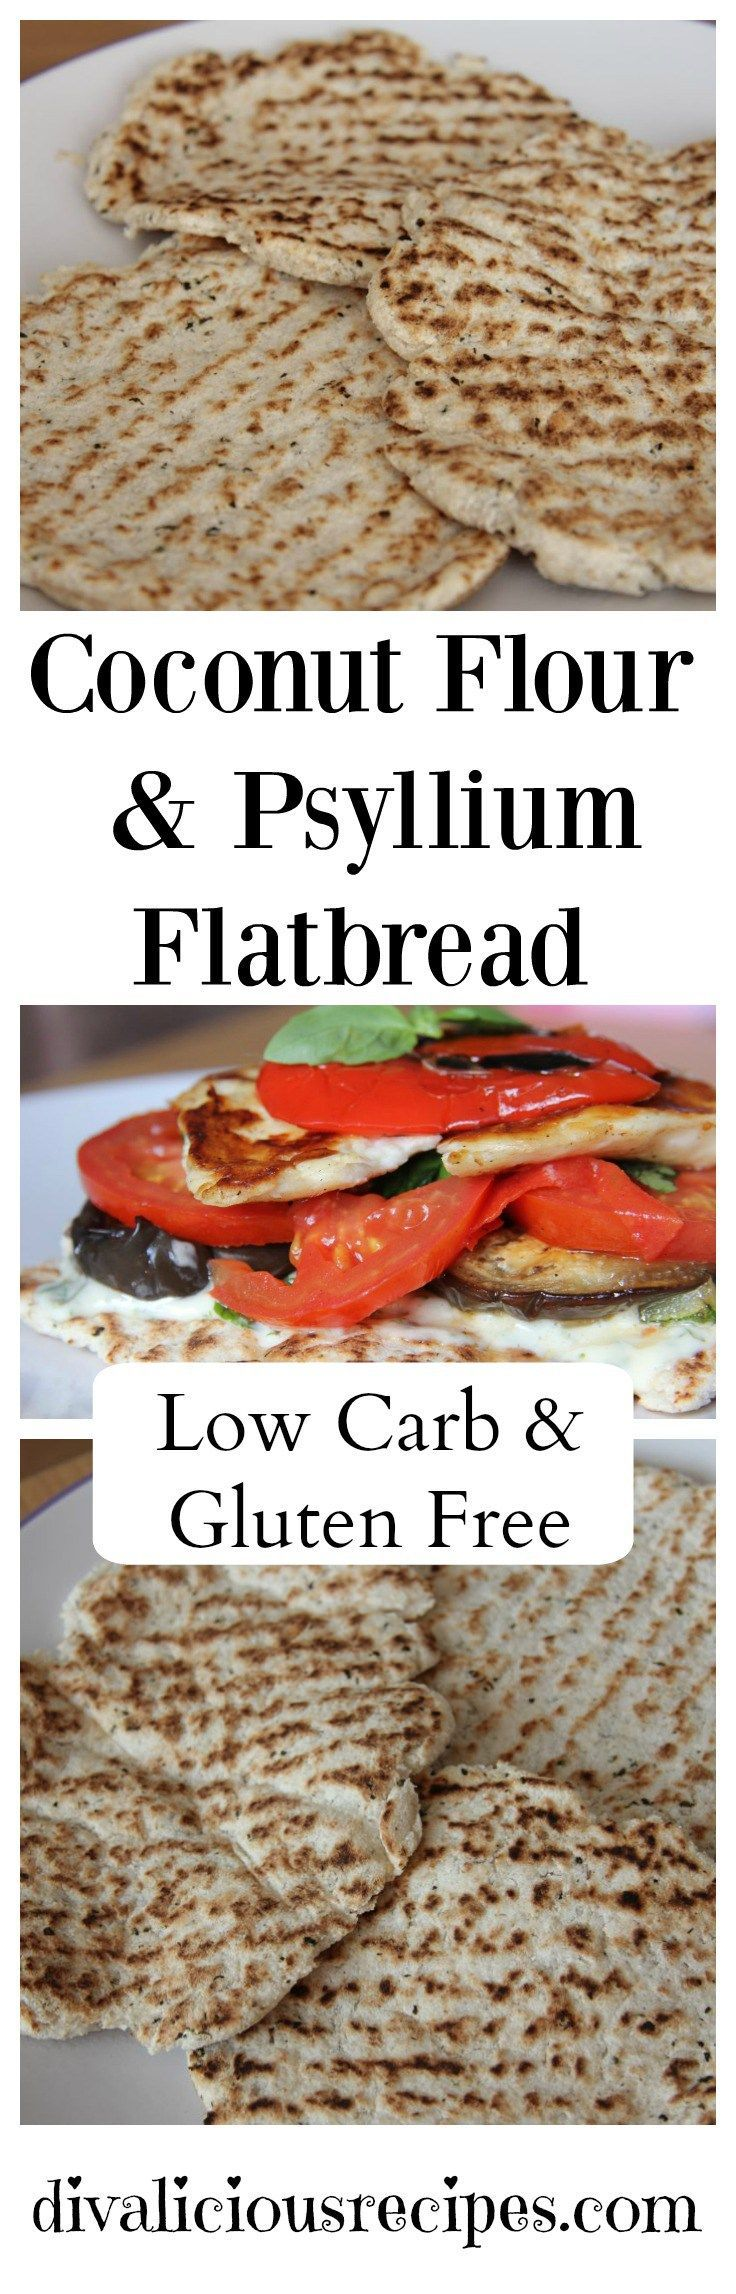 This coconut flour flatbread is another great use of Psyllium in a grain free bread recipe and is very easy to make too.    Recipe : http://divaliciousrecipes.com/2013/08/27/flatbread-coconut-flour-and-psyllium/